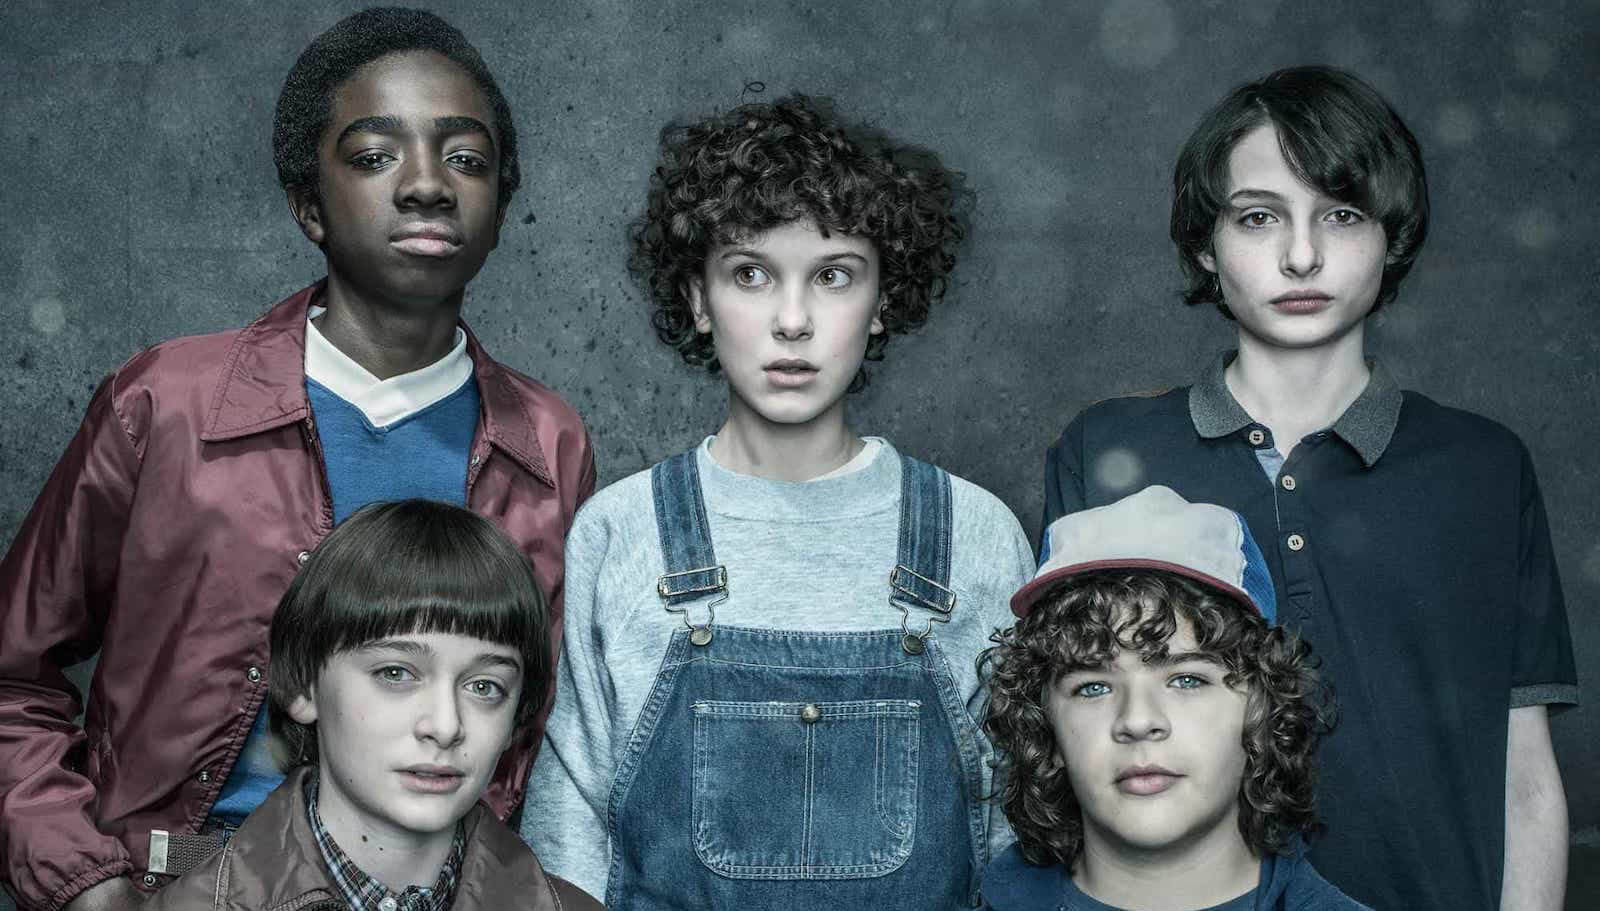 Child Labor Laws - Child Actors - Stranger Things - Professional Childrens School - Studiobinder